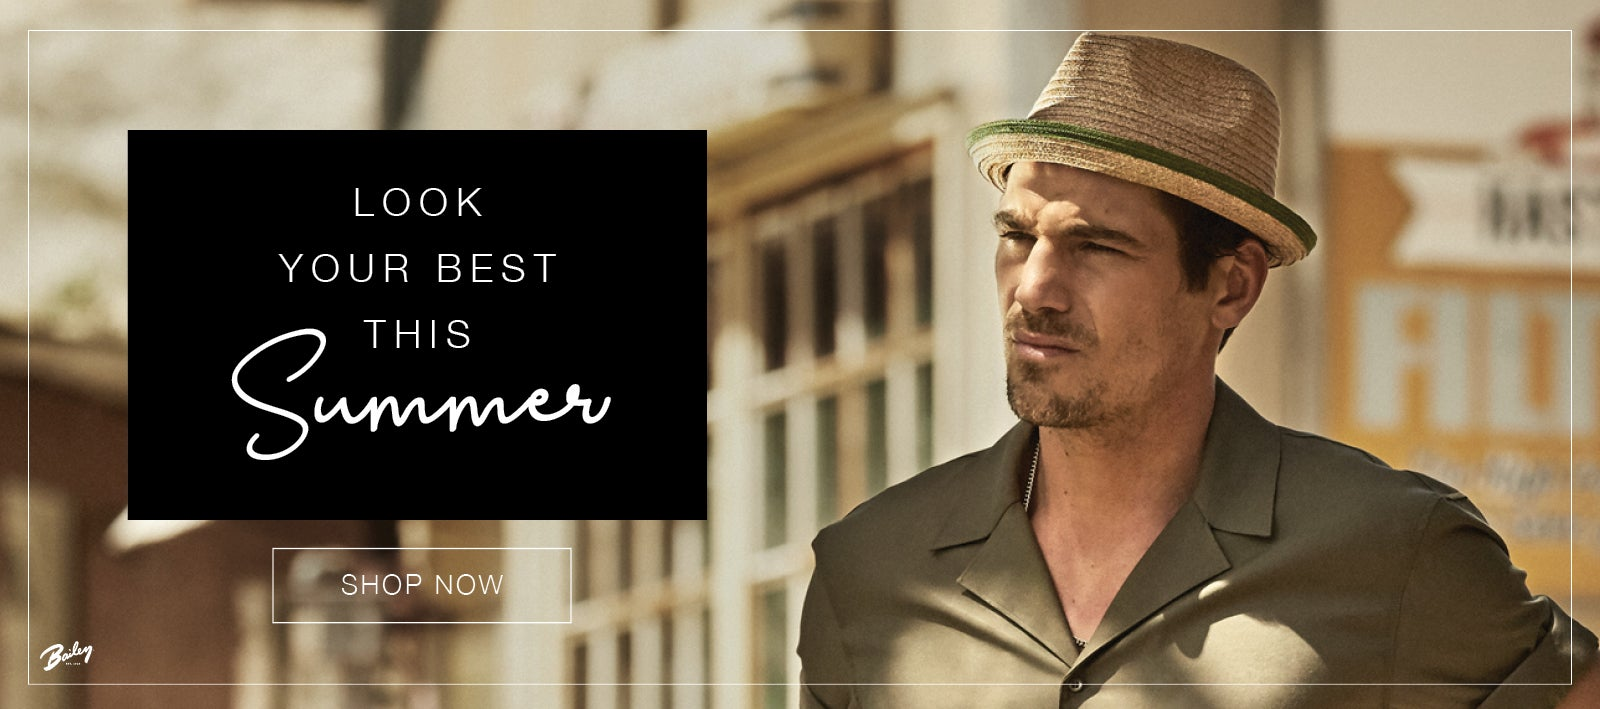 Look Your Best This Summer